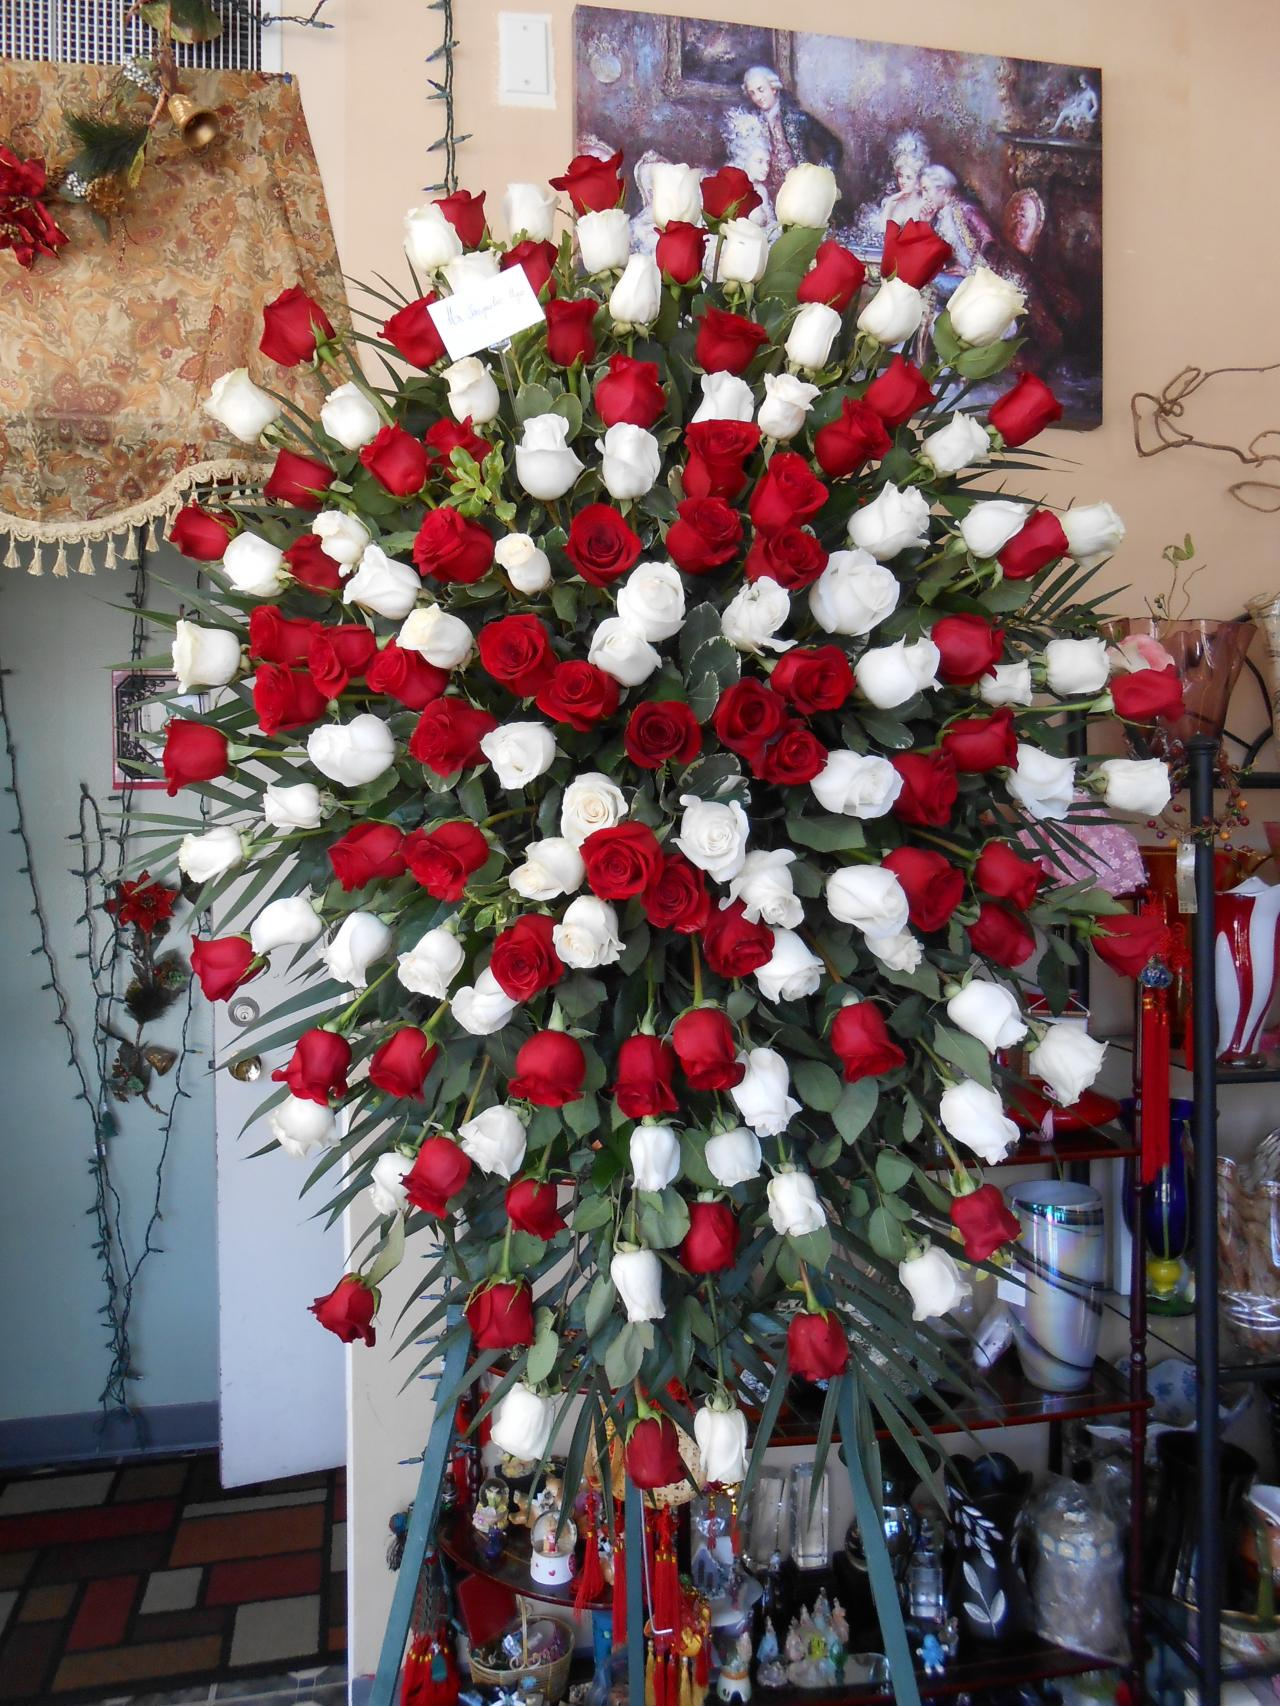 Van florist funeral theres plenty more at our store please come by our shop to see an abundance of funeral arrangements izmirmasajfo Images